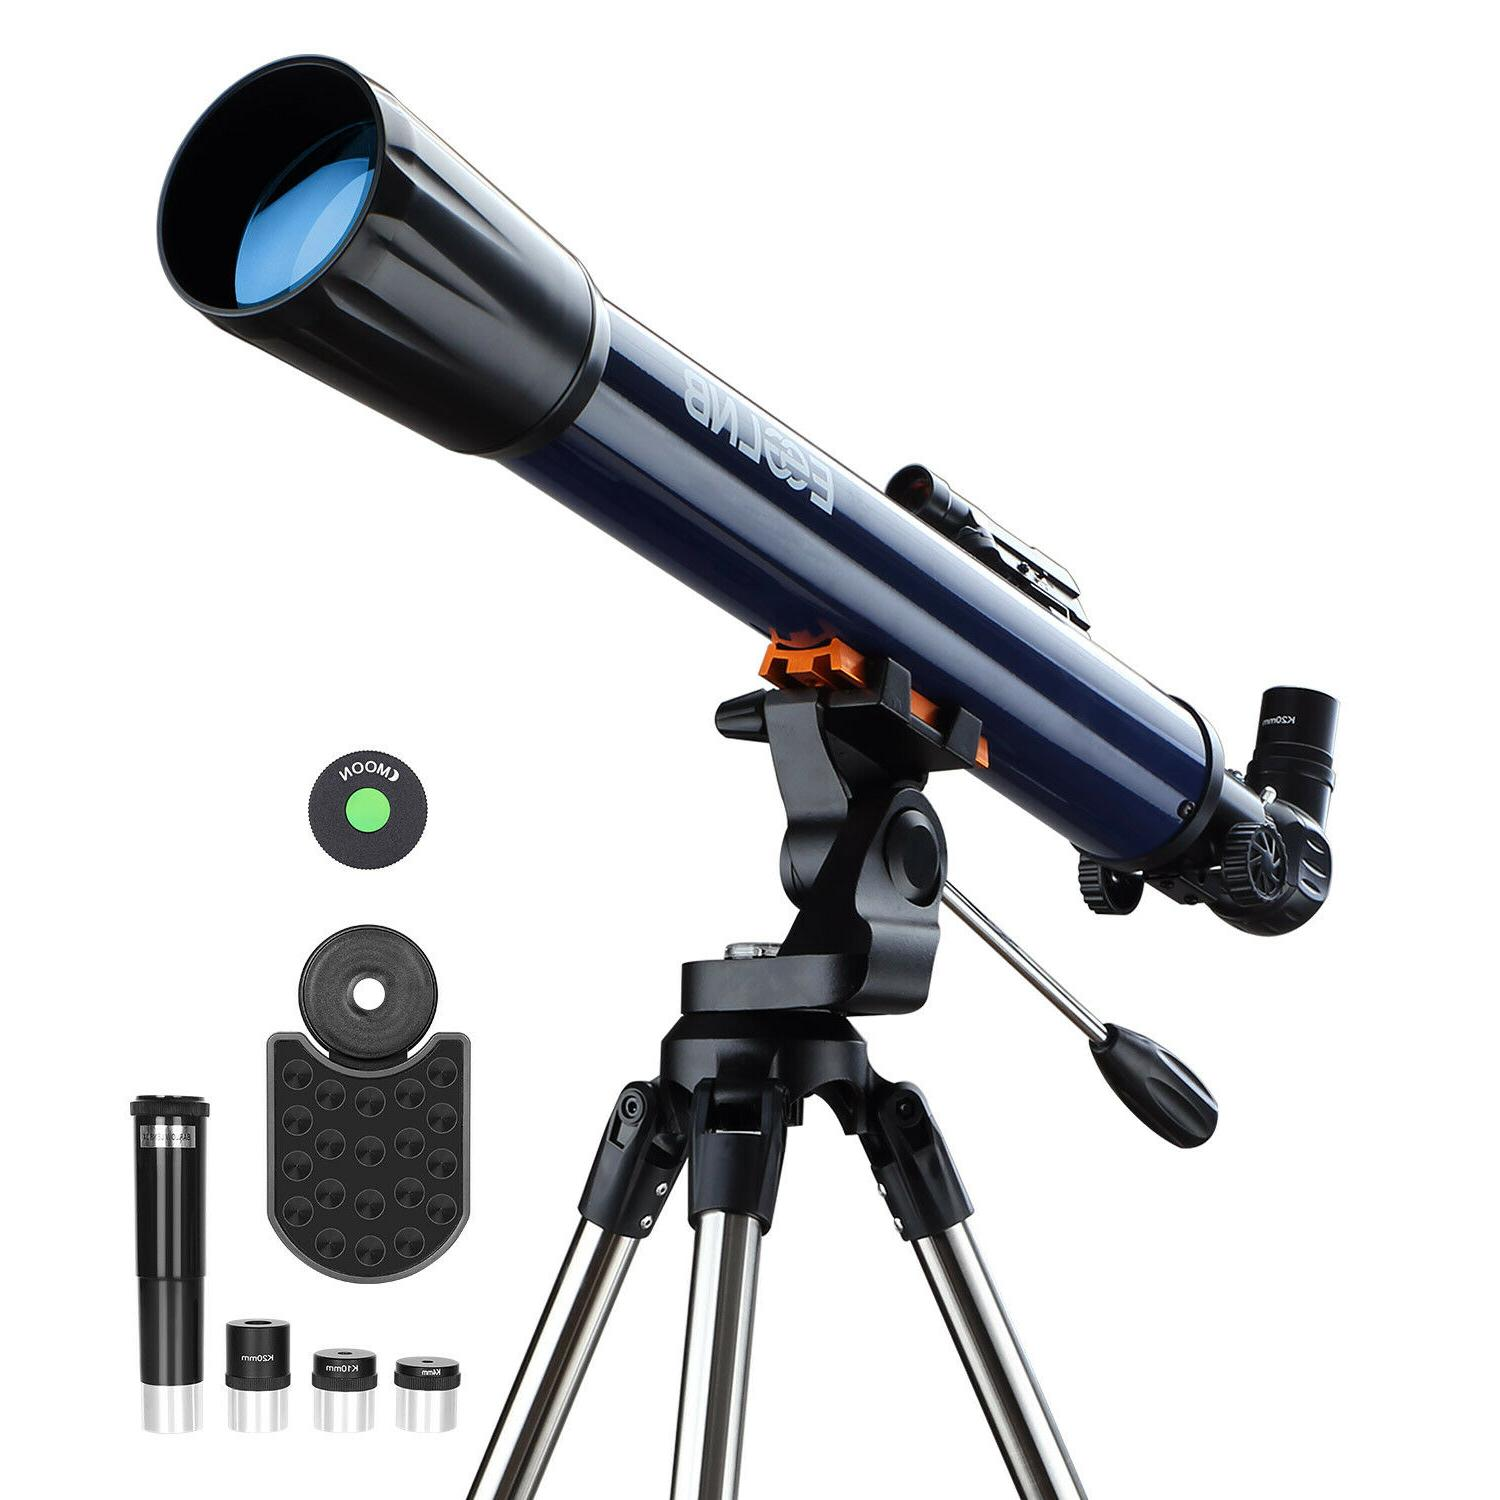 70700 telescope high magnification astronomical refractive e